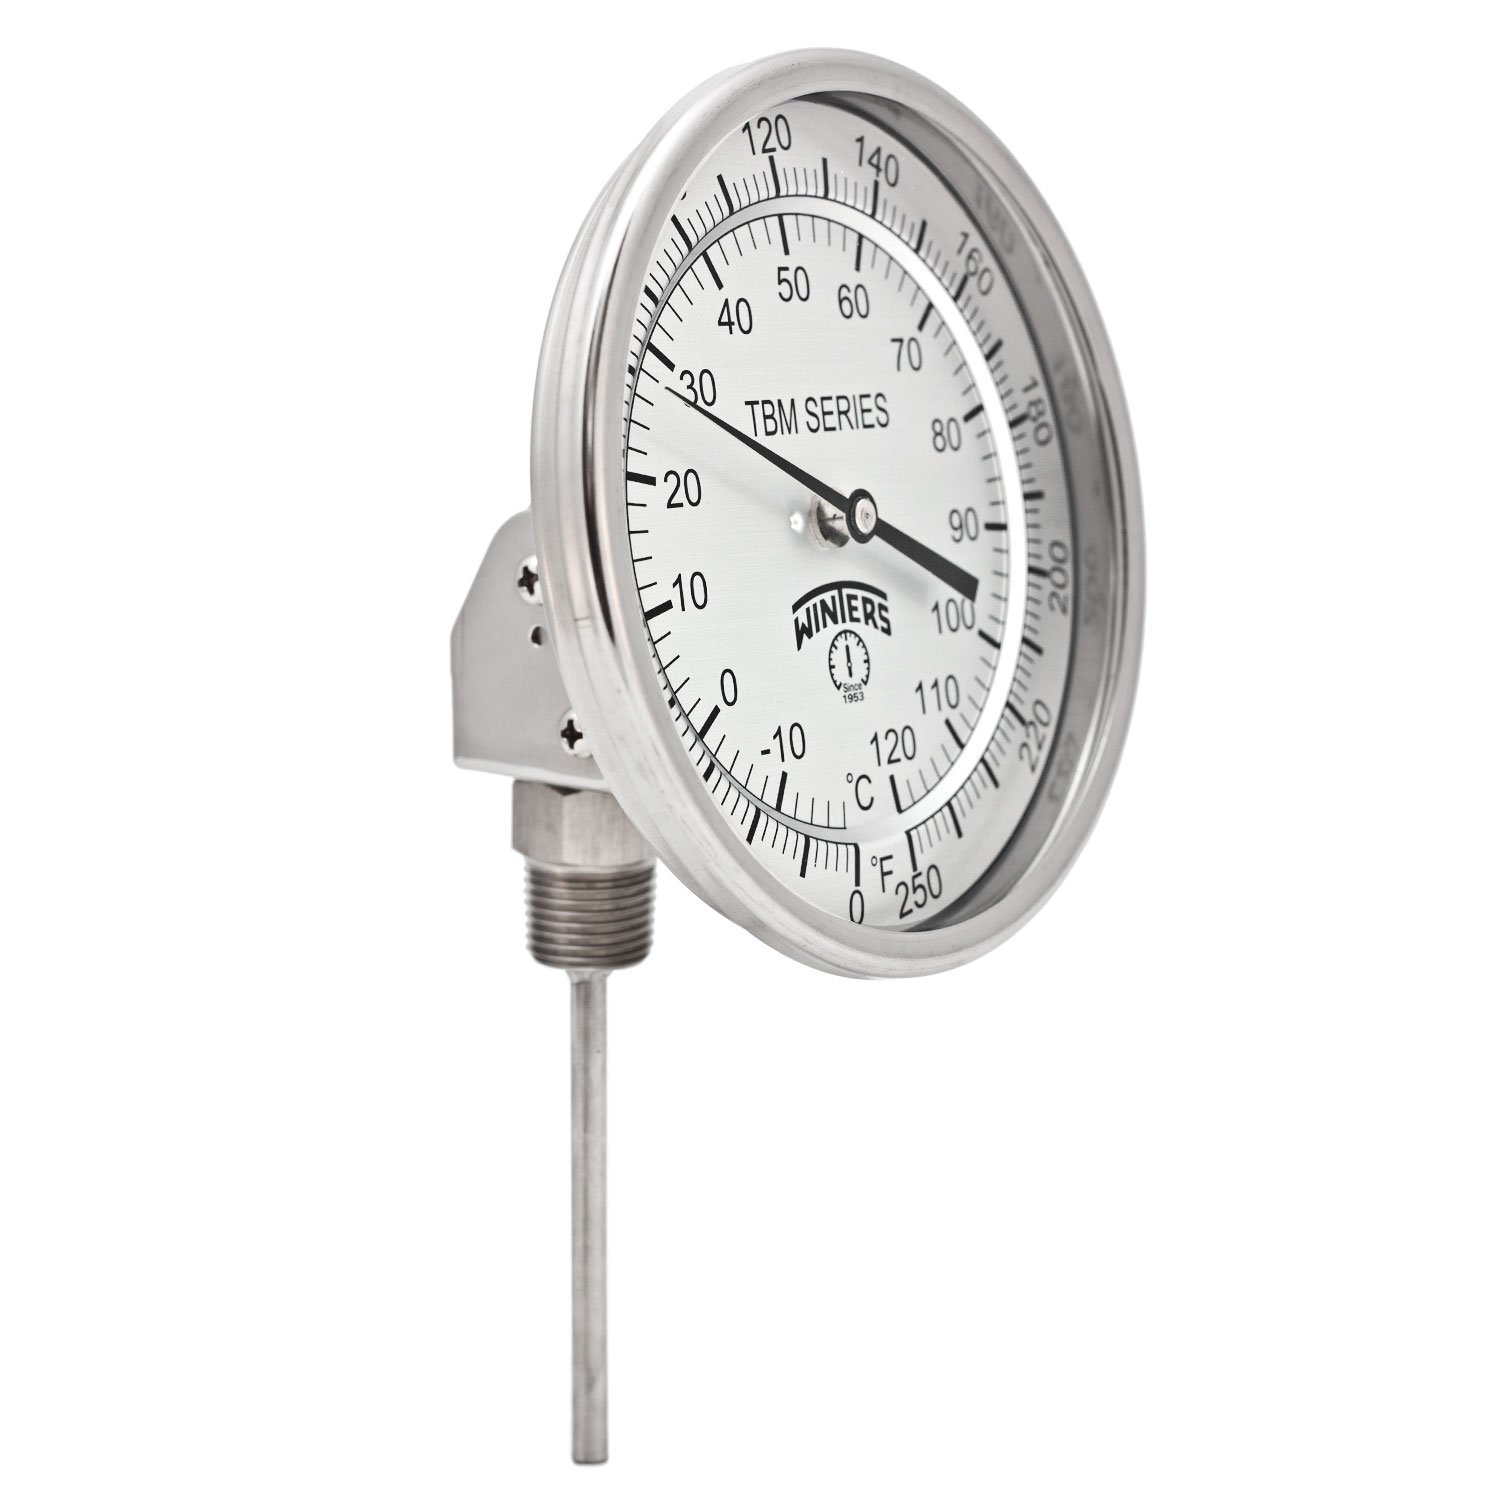 Winters TBM Series Stainless Steel 304 Dual Scale Bi-Metal Thermometer, 4'' Stem, 1/2'' NPT Adjustable Angle Connection, 5'' Dial, 0-250 F/C Range